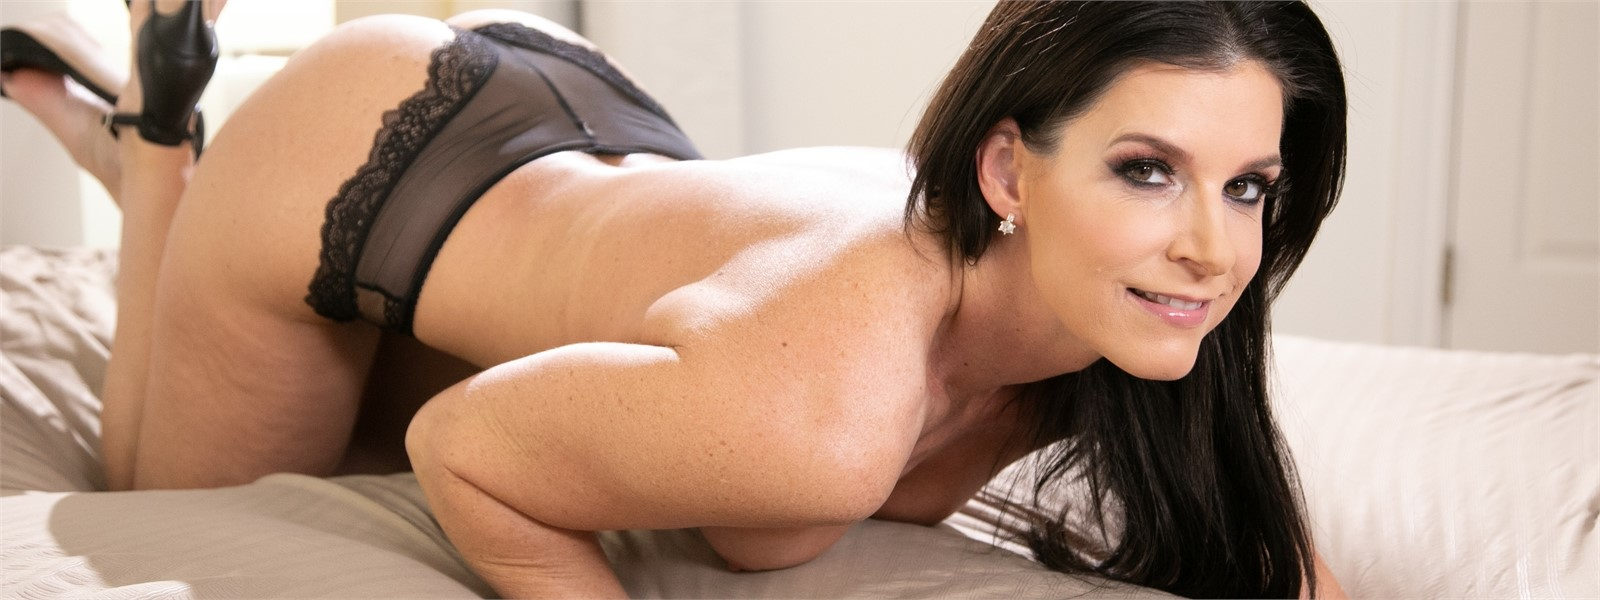 India Summer Hero Image